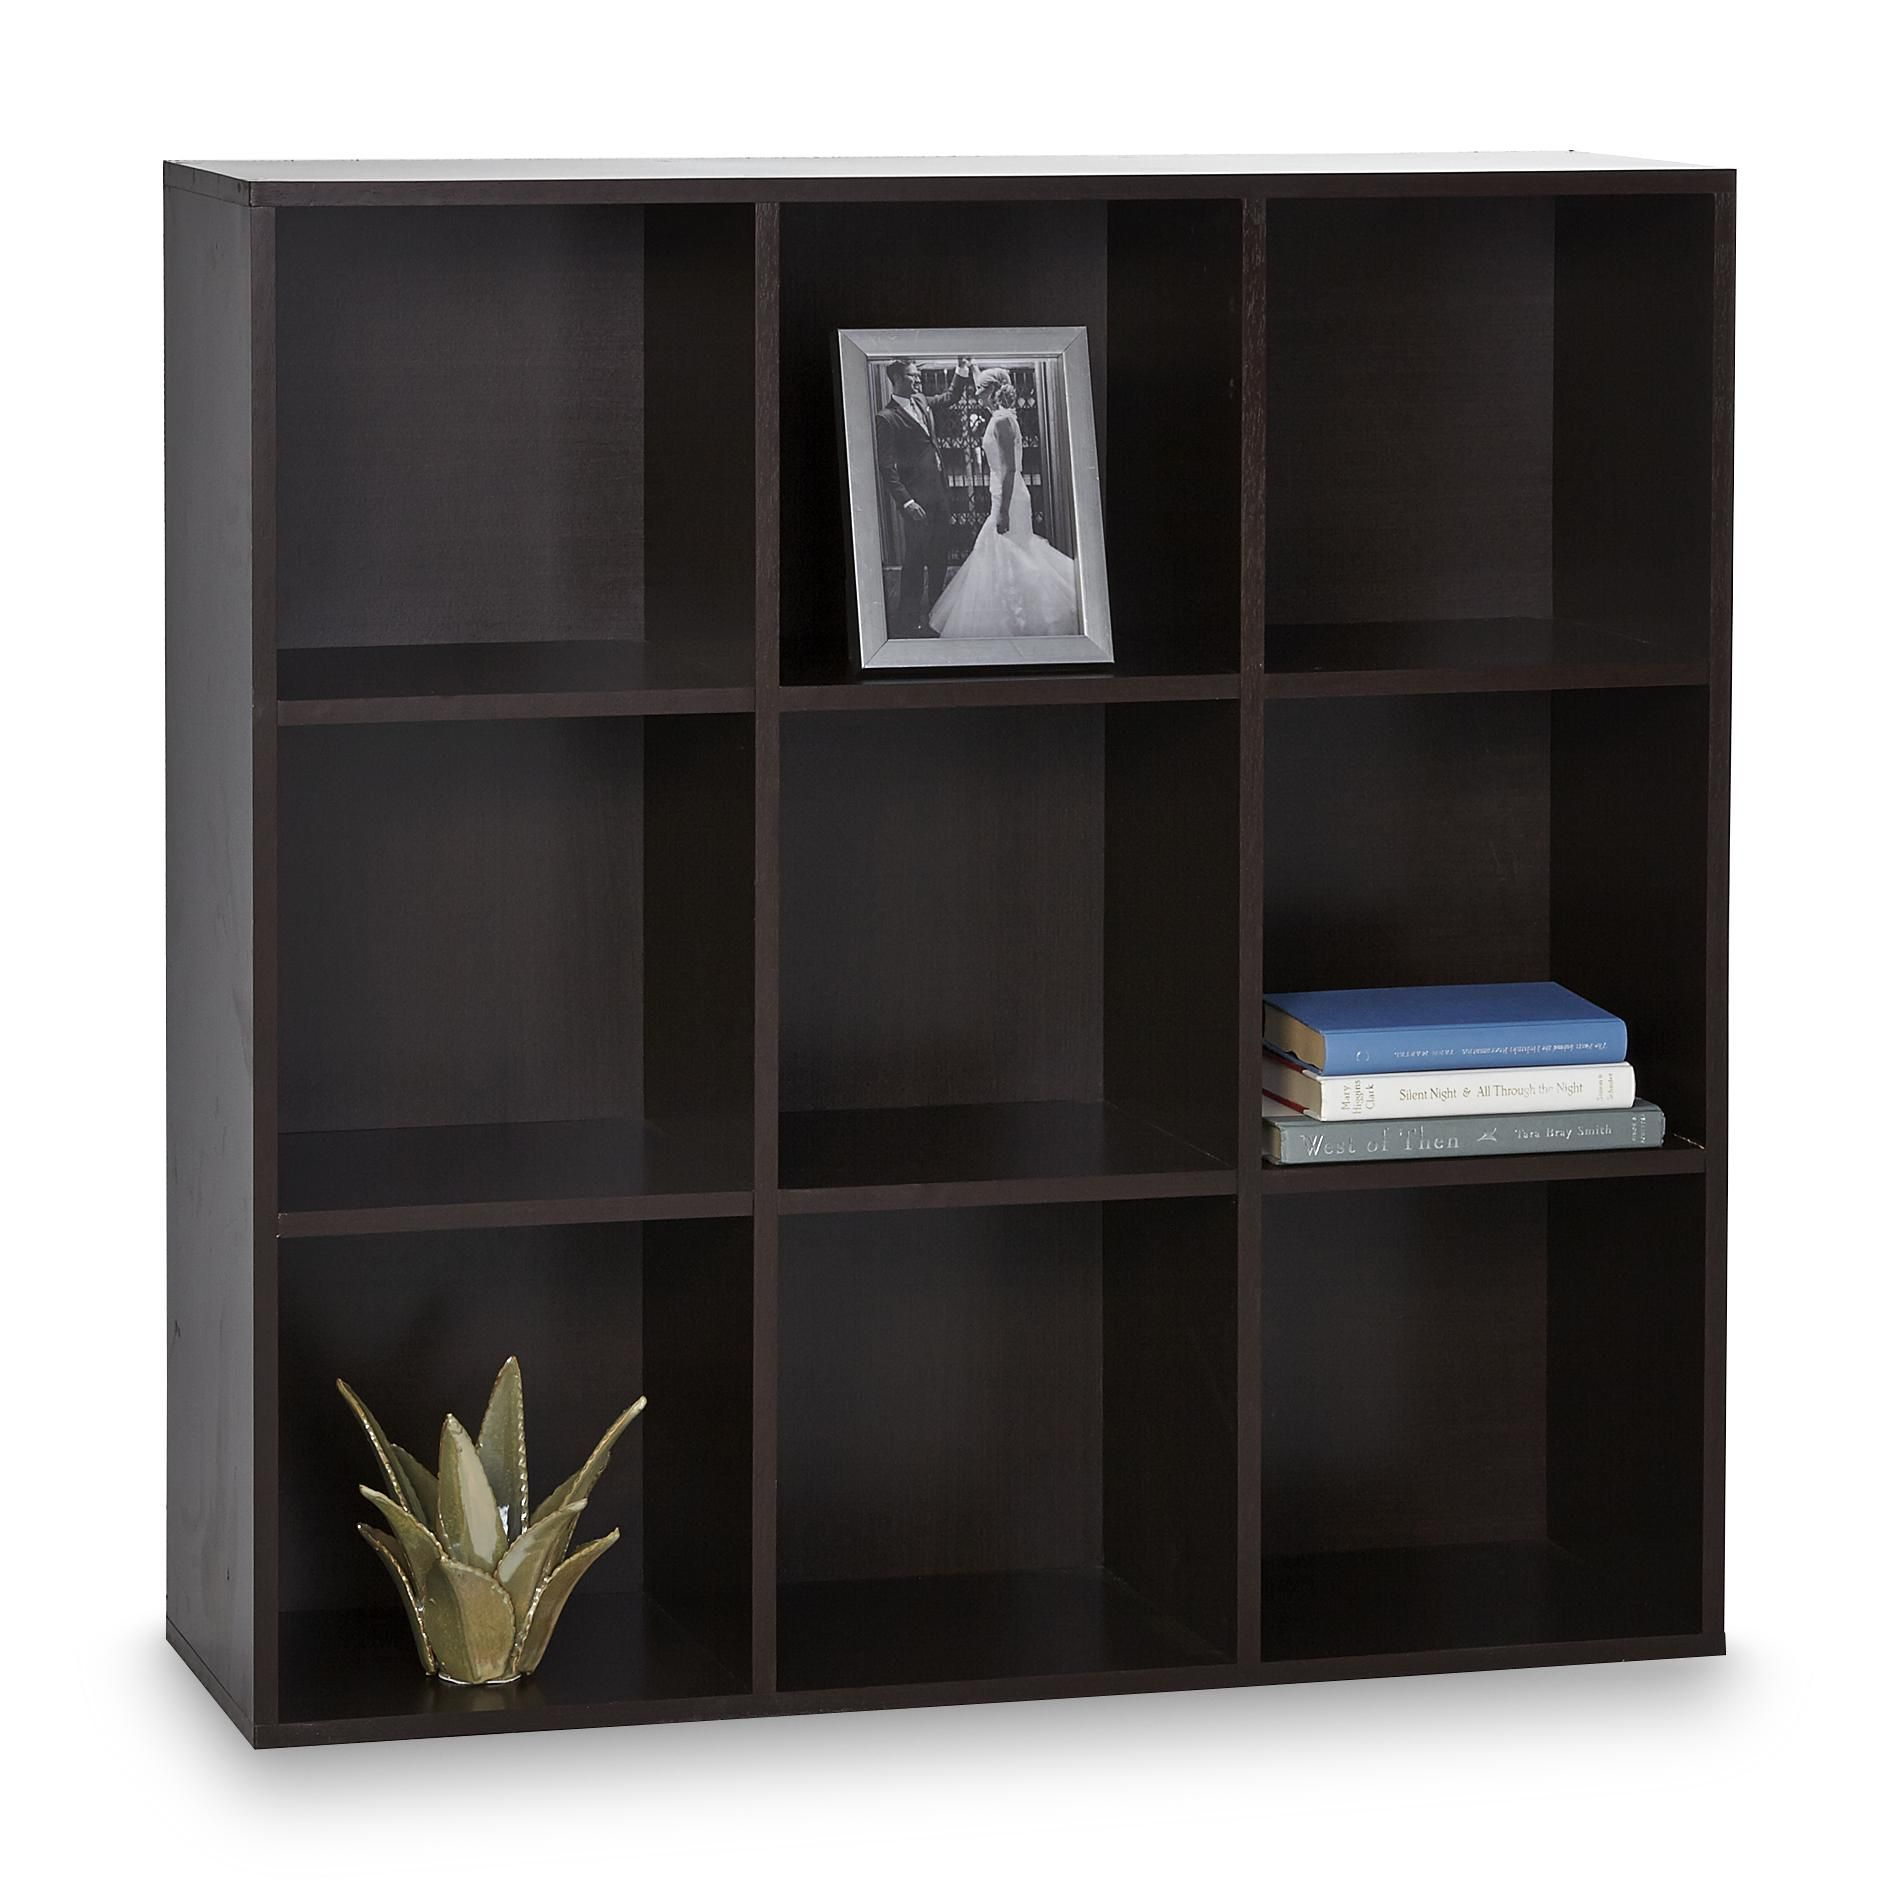 wooden cubes furniture. Essential Home 9 Cube Storage Unit - Espresso Wooden Cubes Furniture O